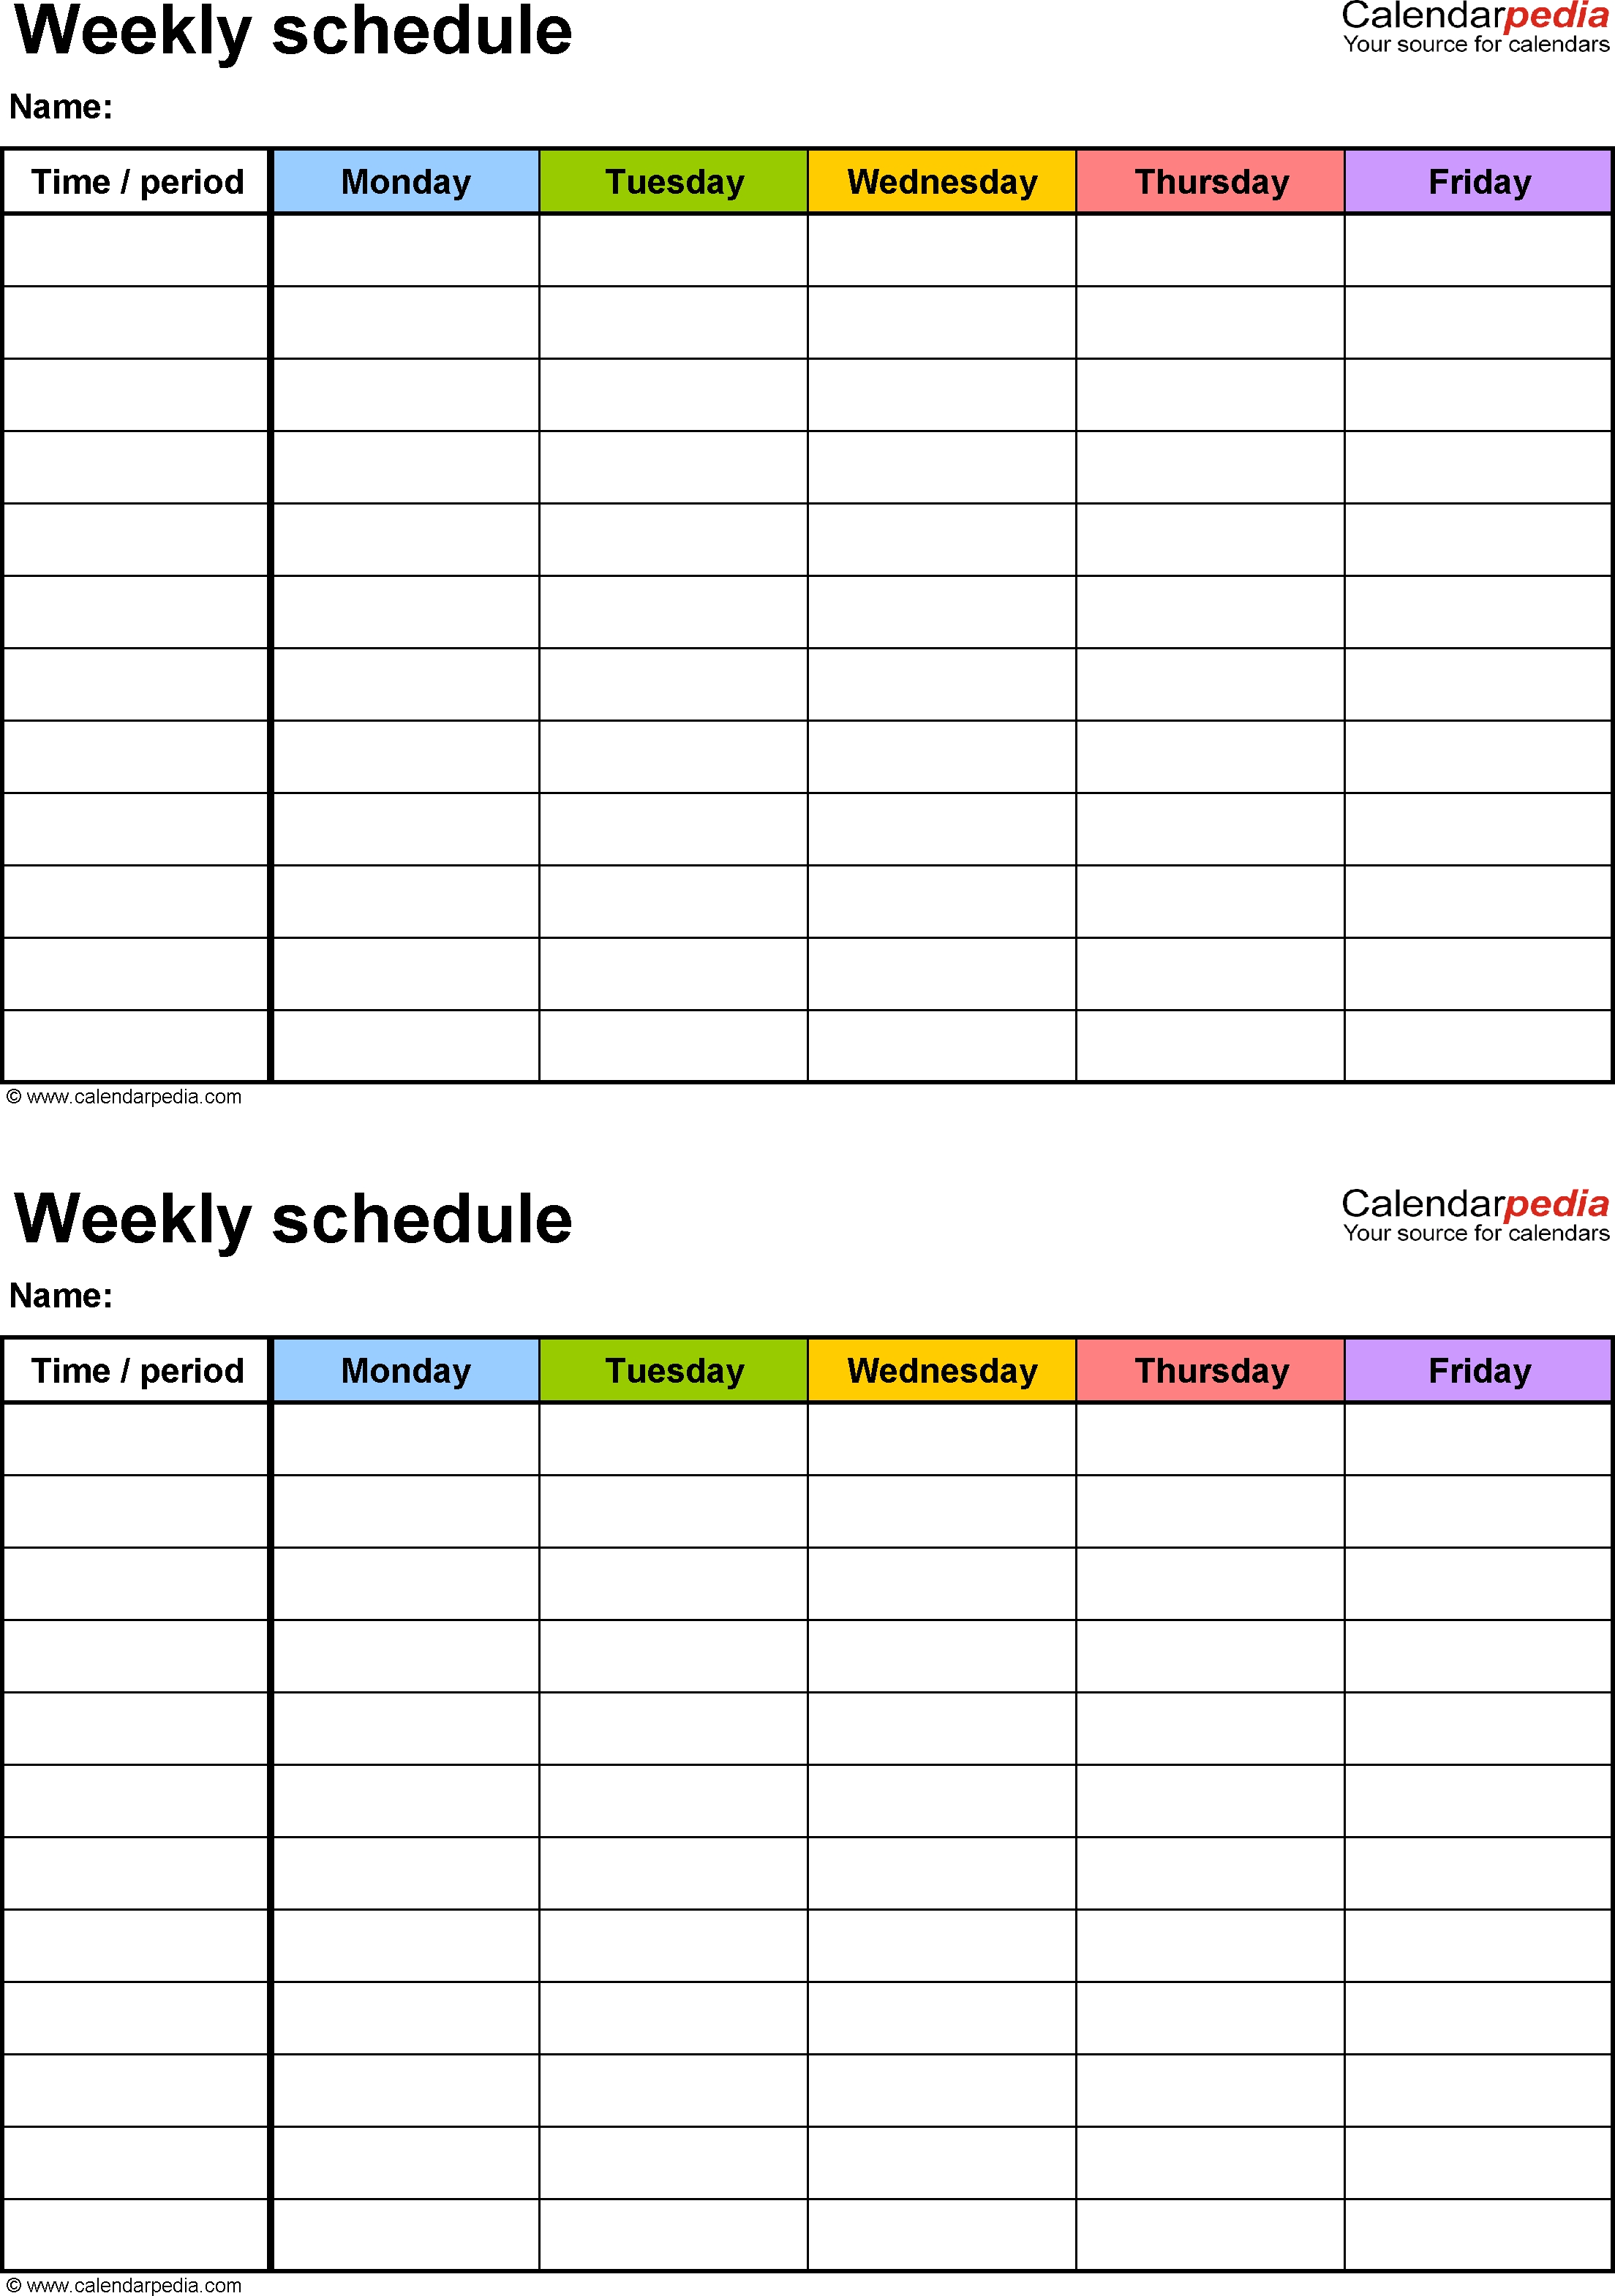 Free Weekly Schedule Templates For Word - 18 Templates throughout 2 Week Calendar Printable Free